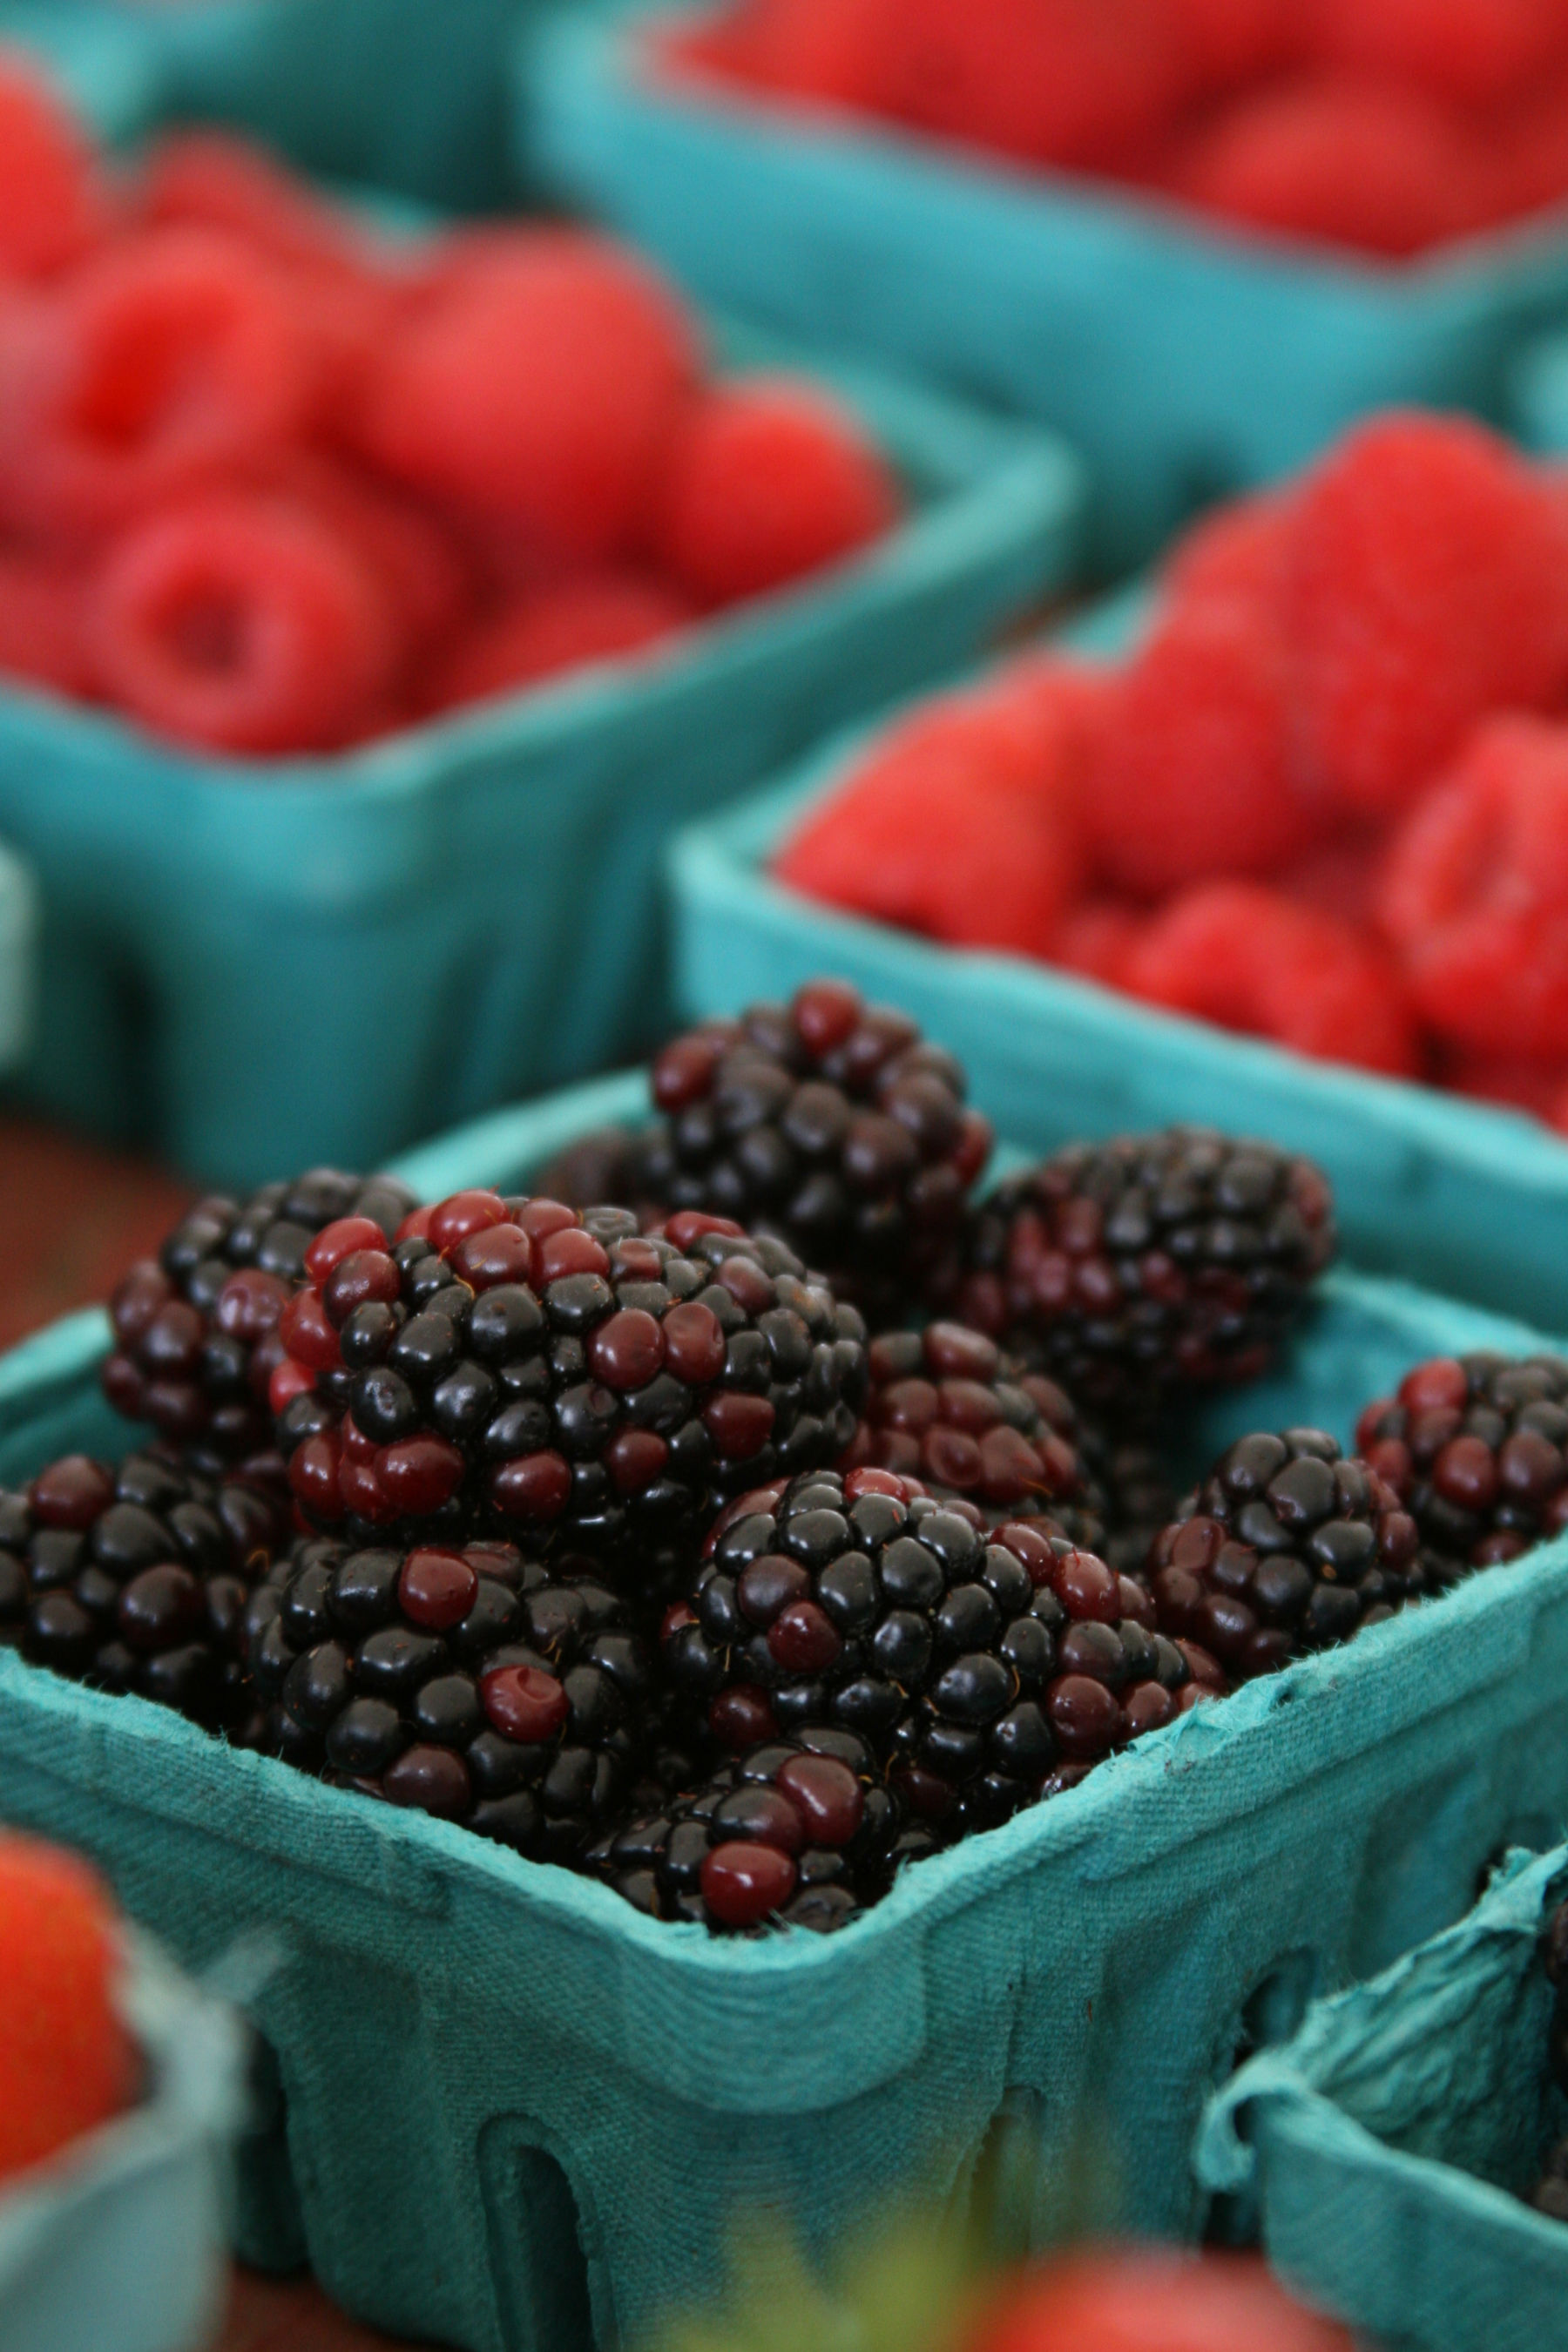 blackberries and raspberries in pint containers at the farm